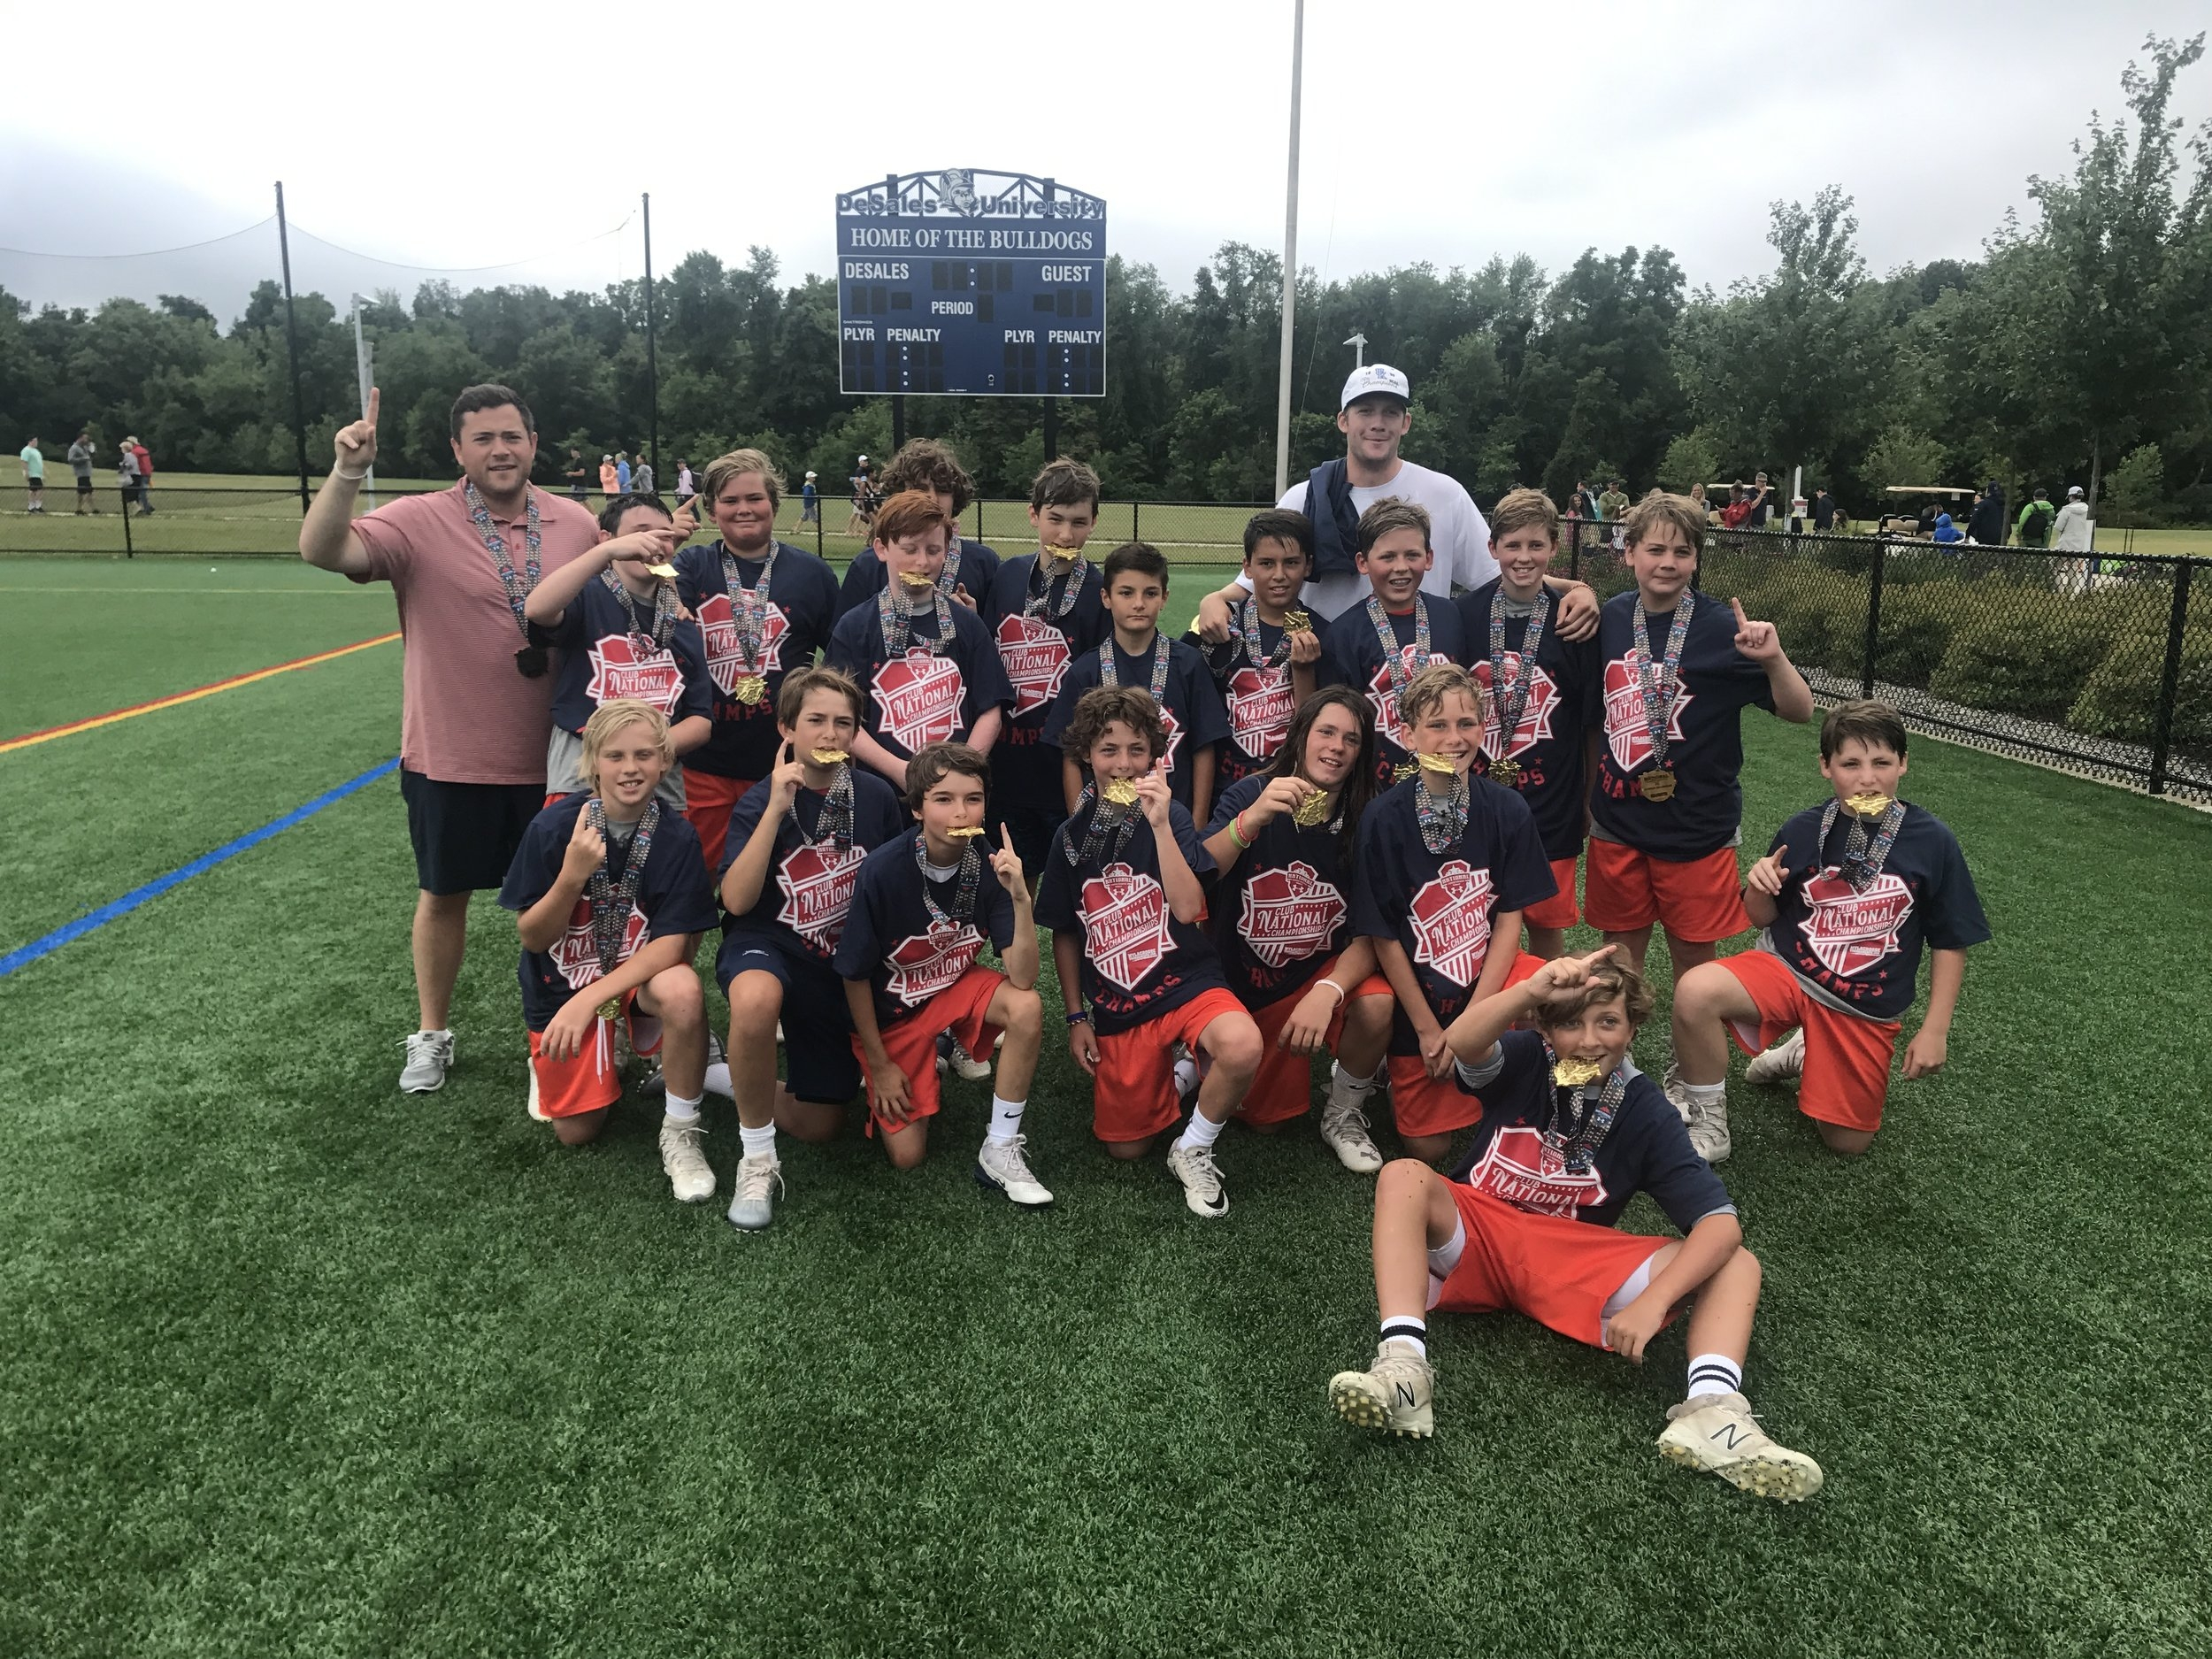 2024A Team - NLF National Champions - Summer 2018